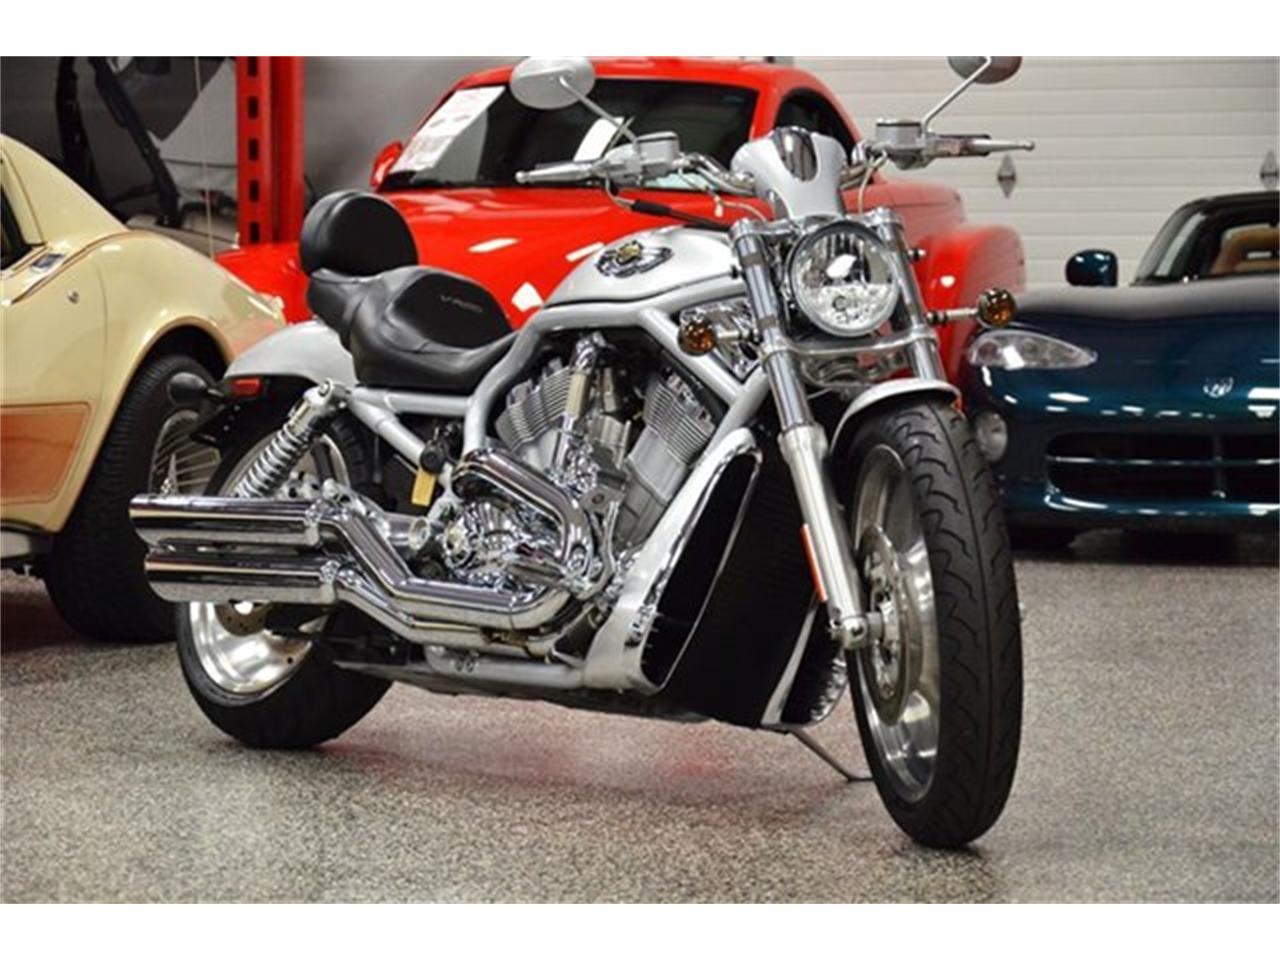 2003 Harley-Davidson VRSC for sale in Plainfield, IL – photo 7